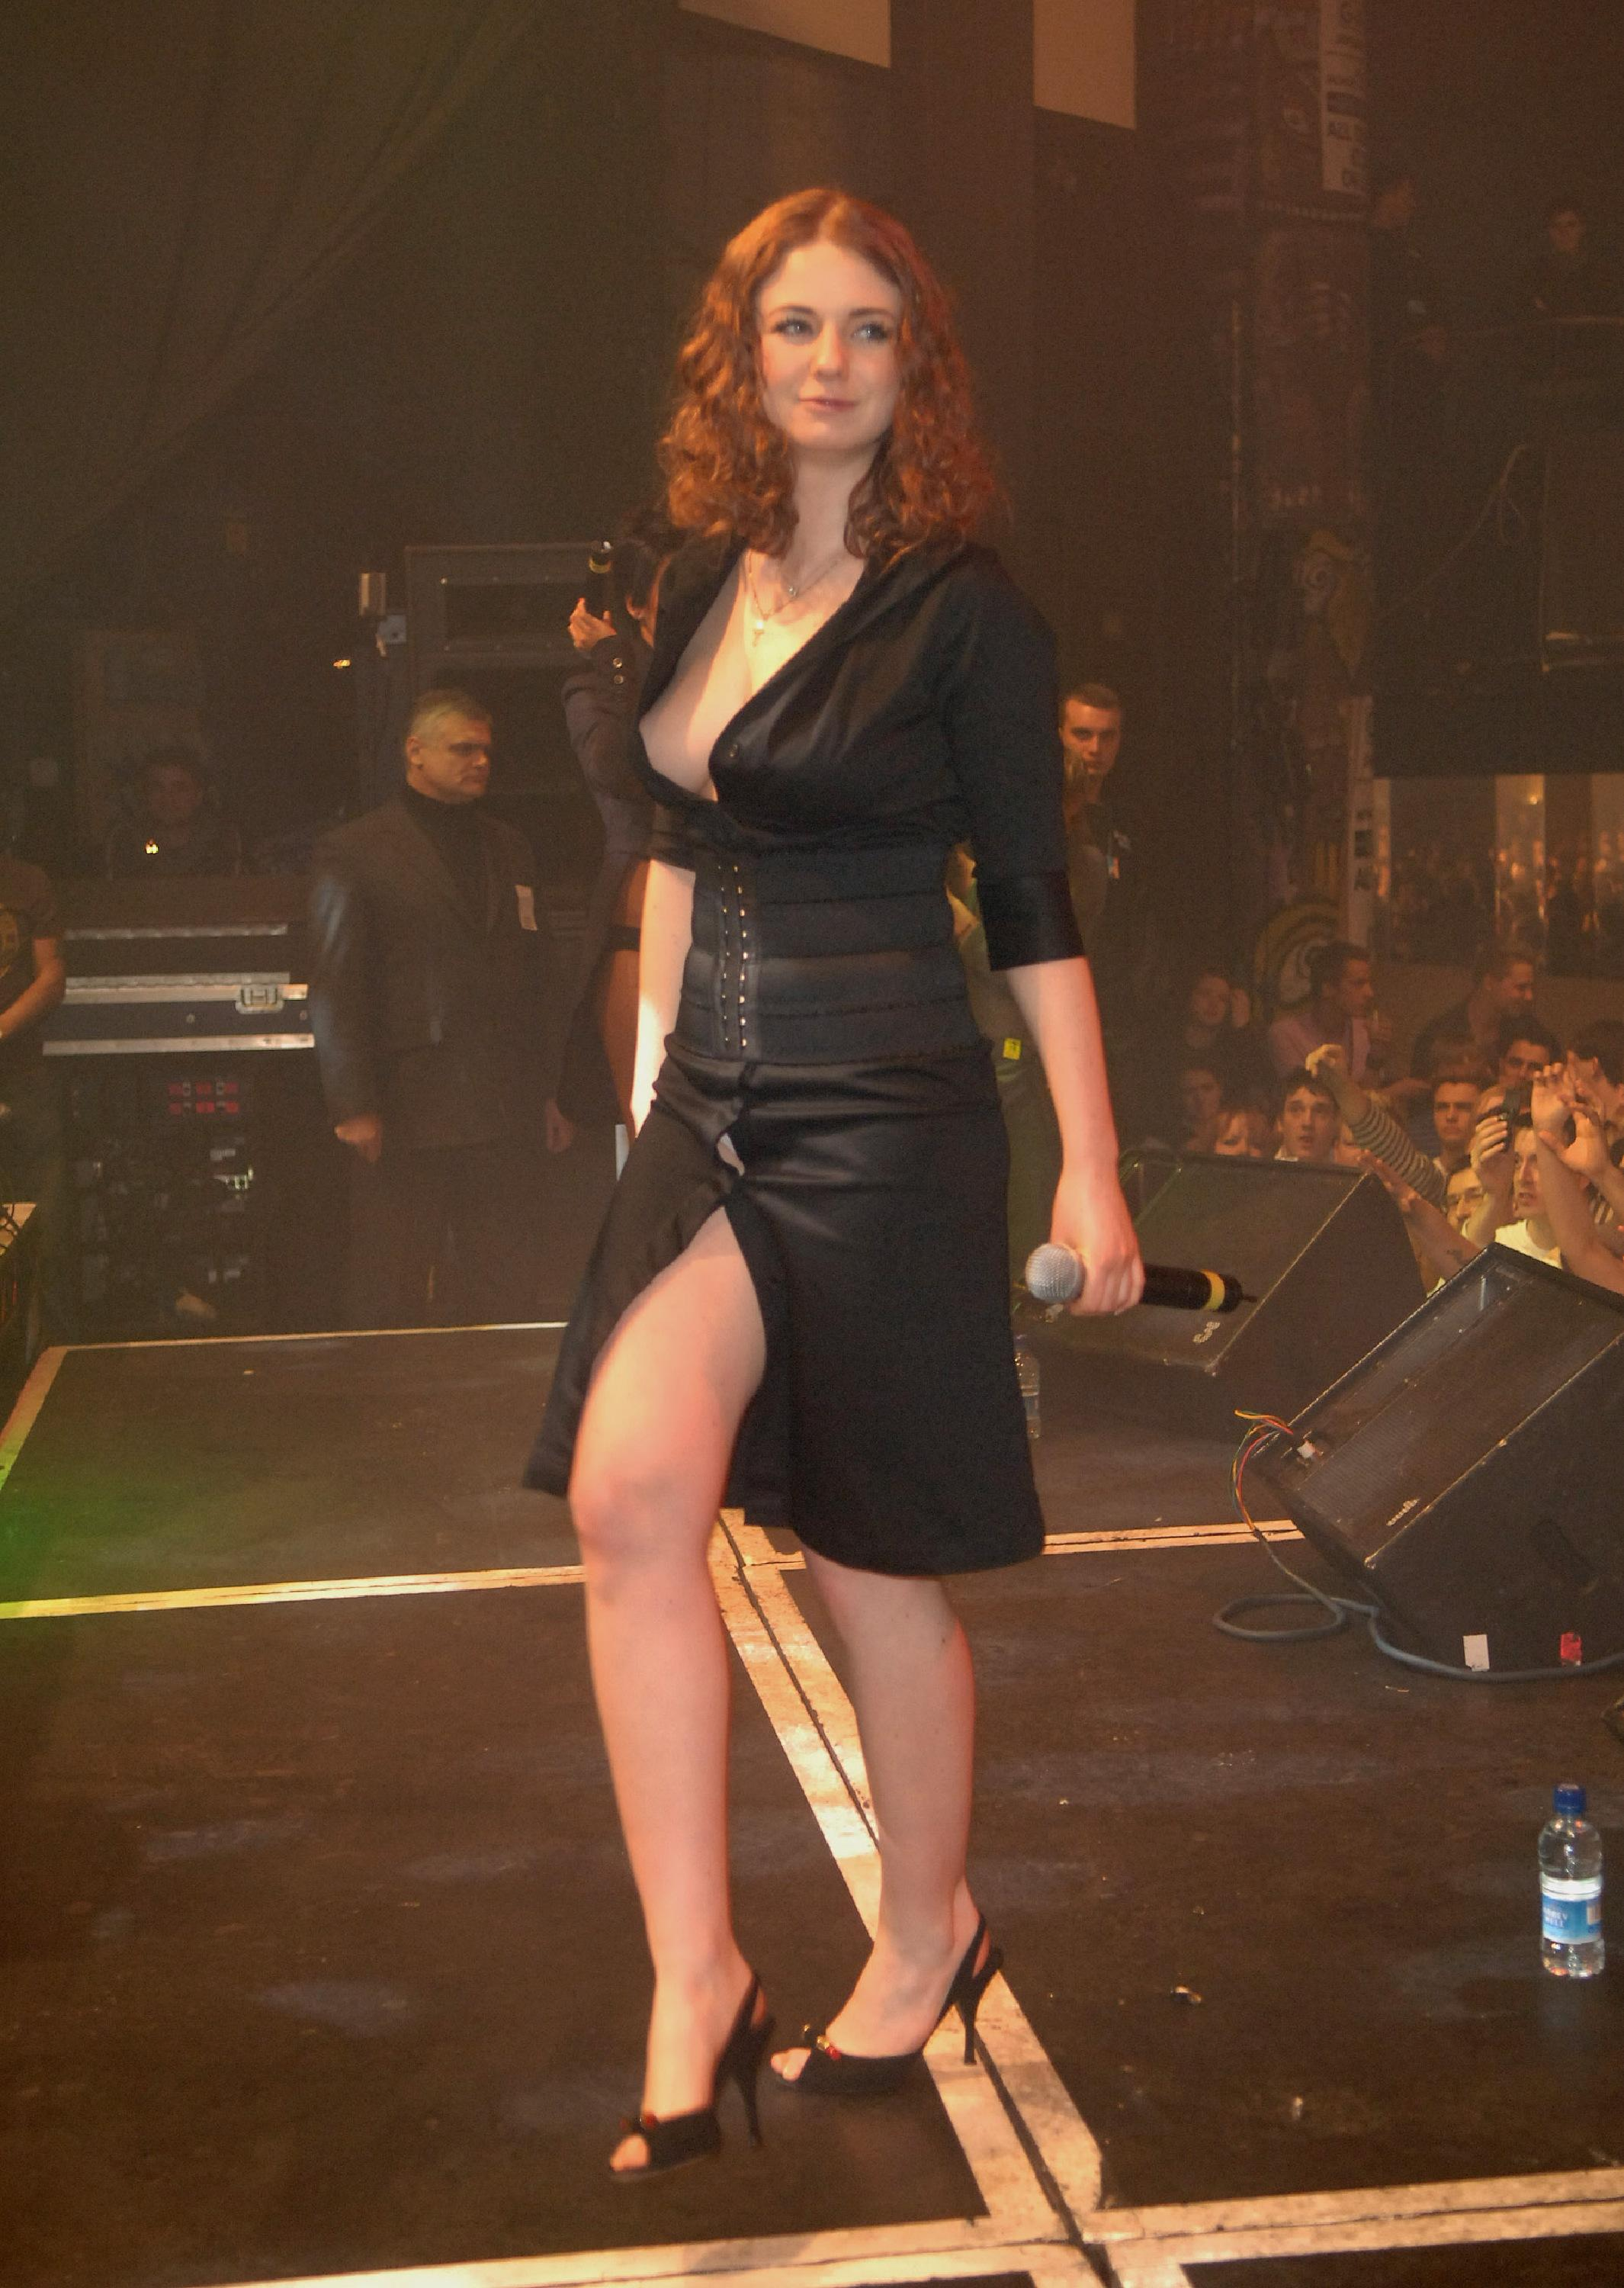 ТАТУ - Tatu Perform at G-A-Y in London 28.01.2006